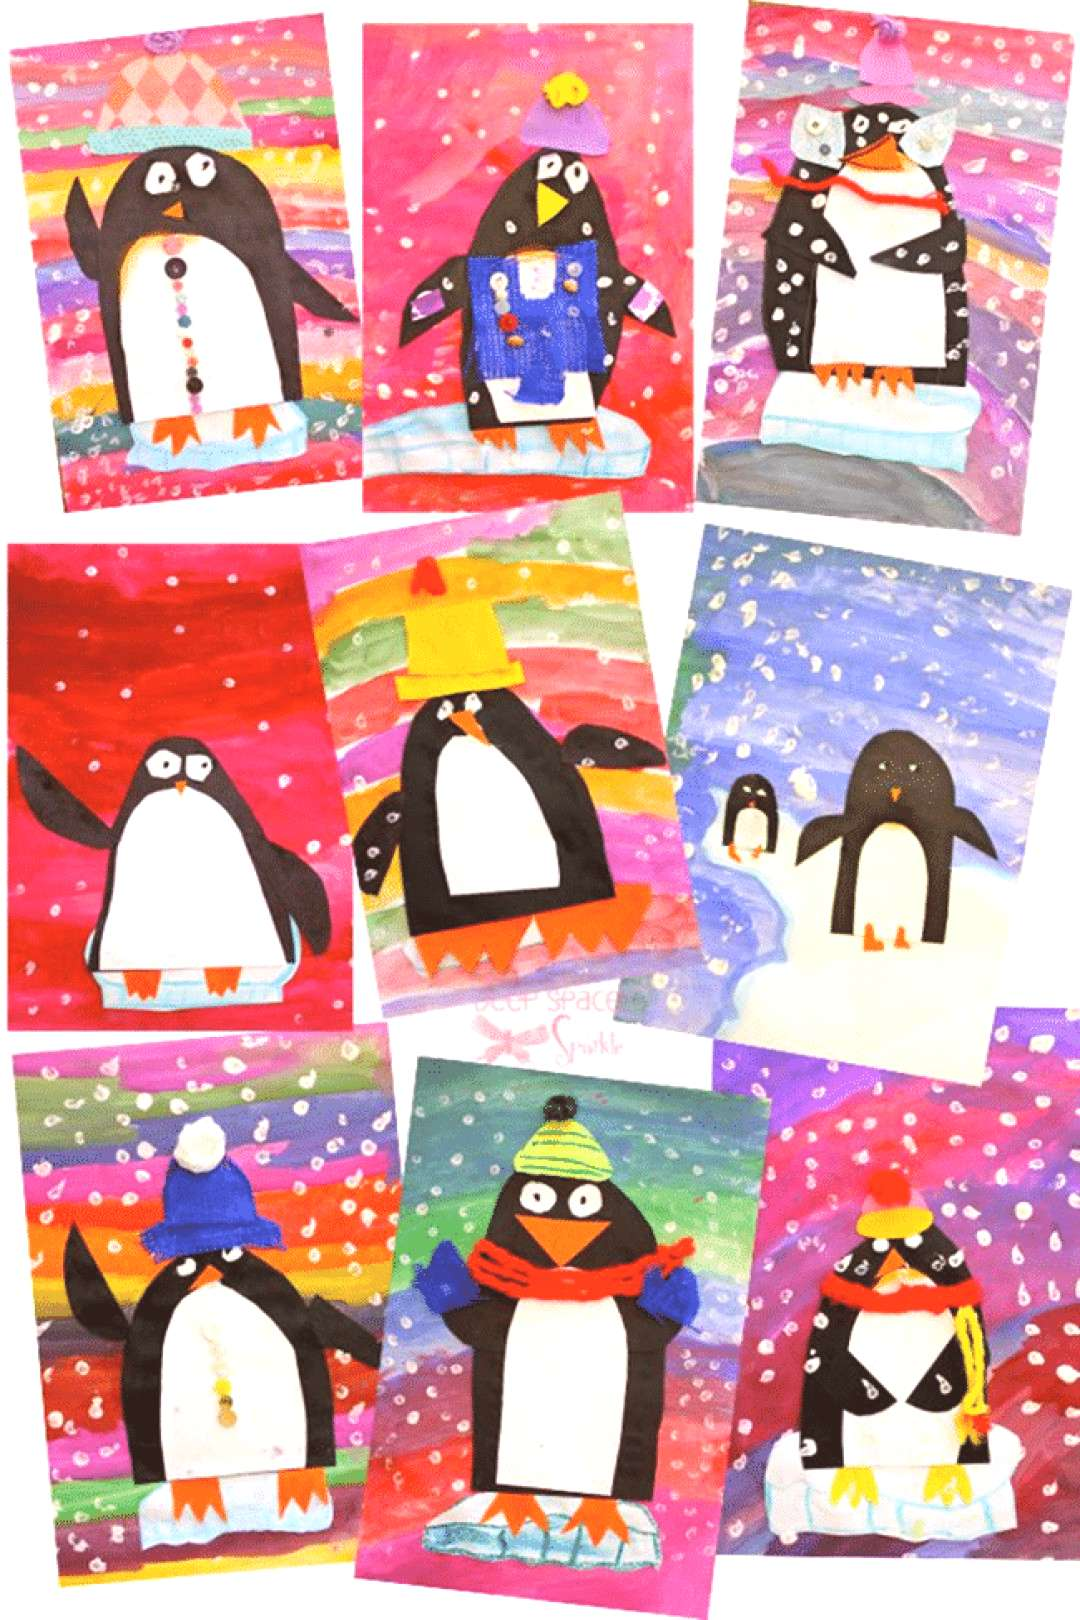 Penguin books are great non-fiction read alouds to use during January and February. Here are lots